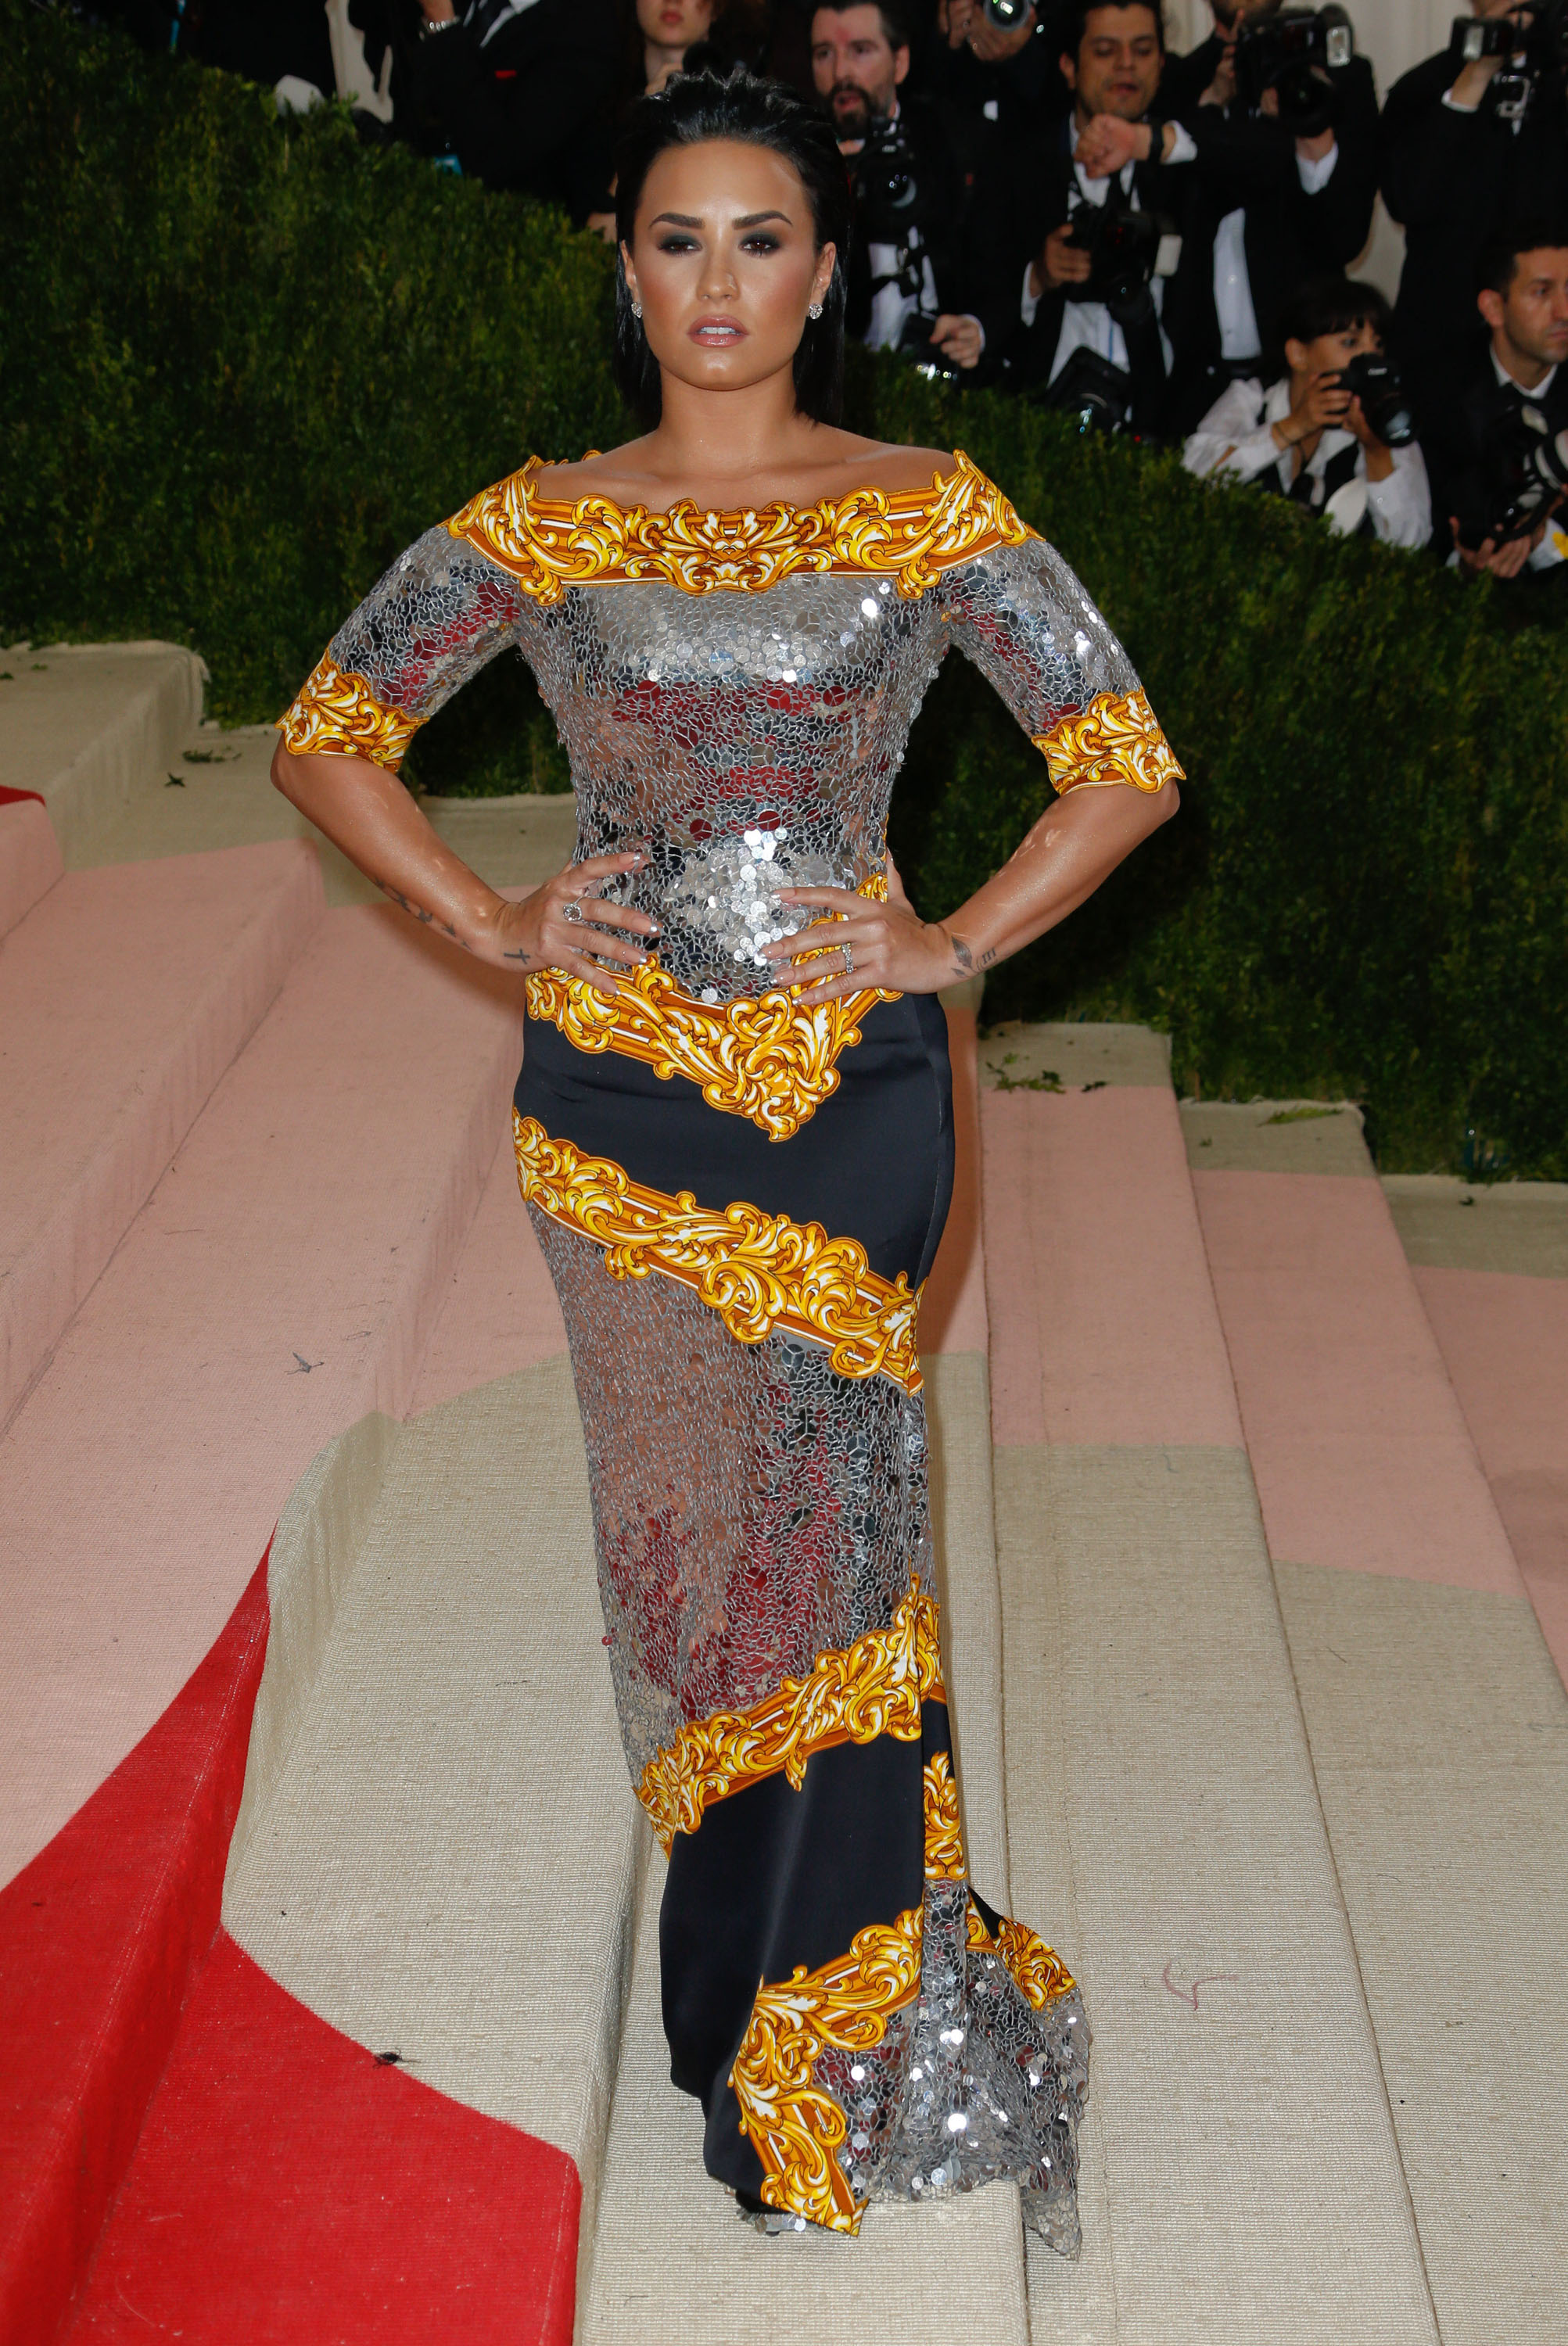 See the 2016 Met Gala's 15 most outlandish celebrity looks [GALLERY]